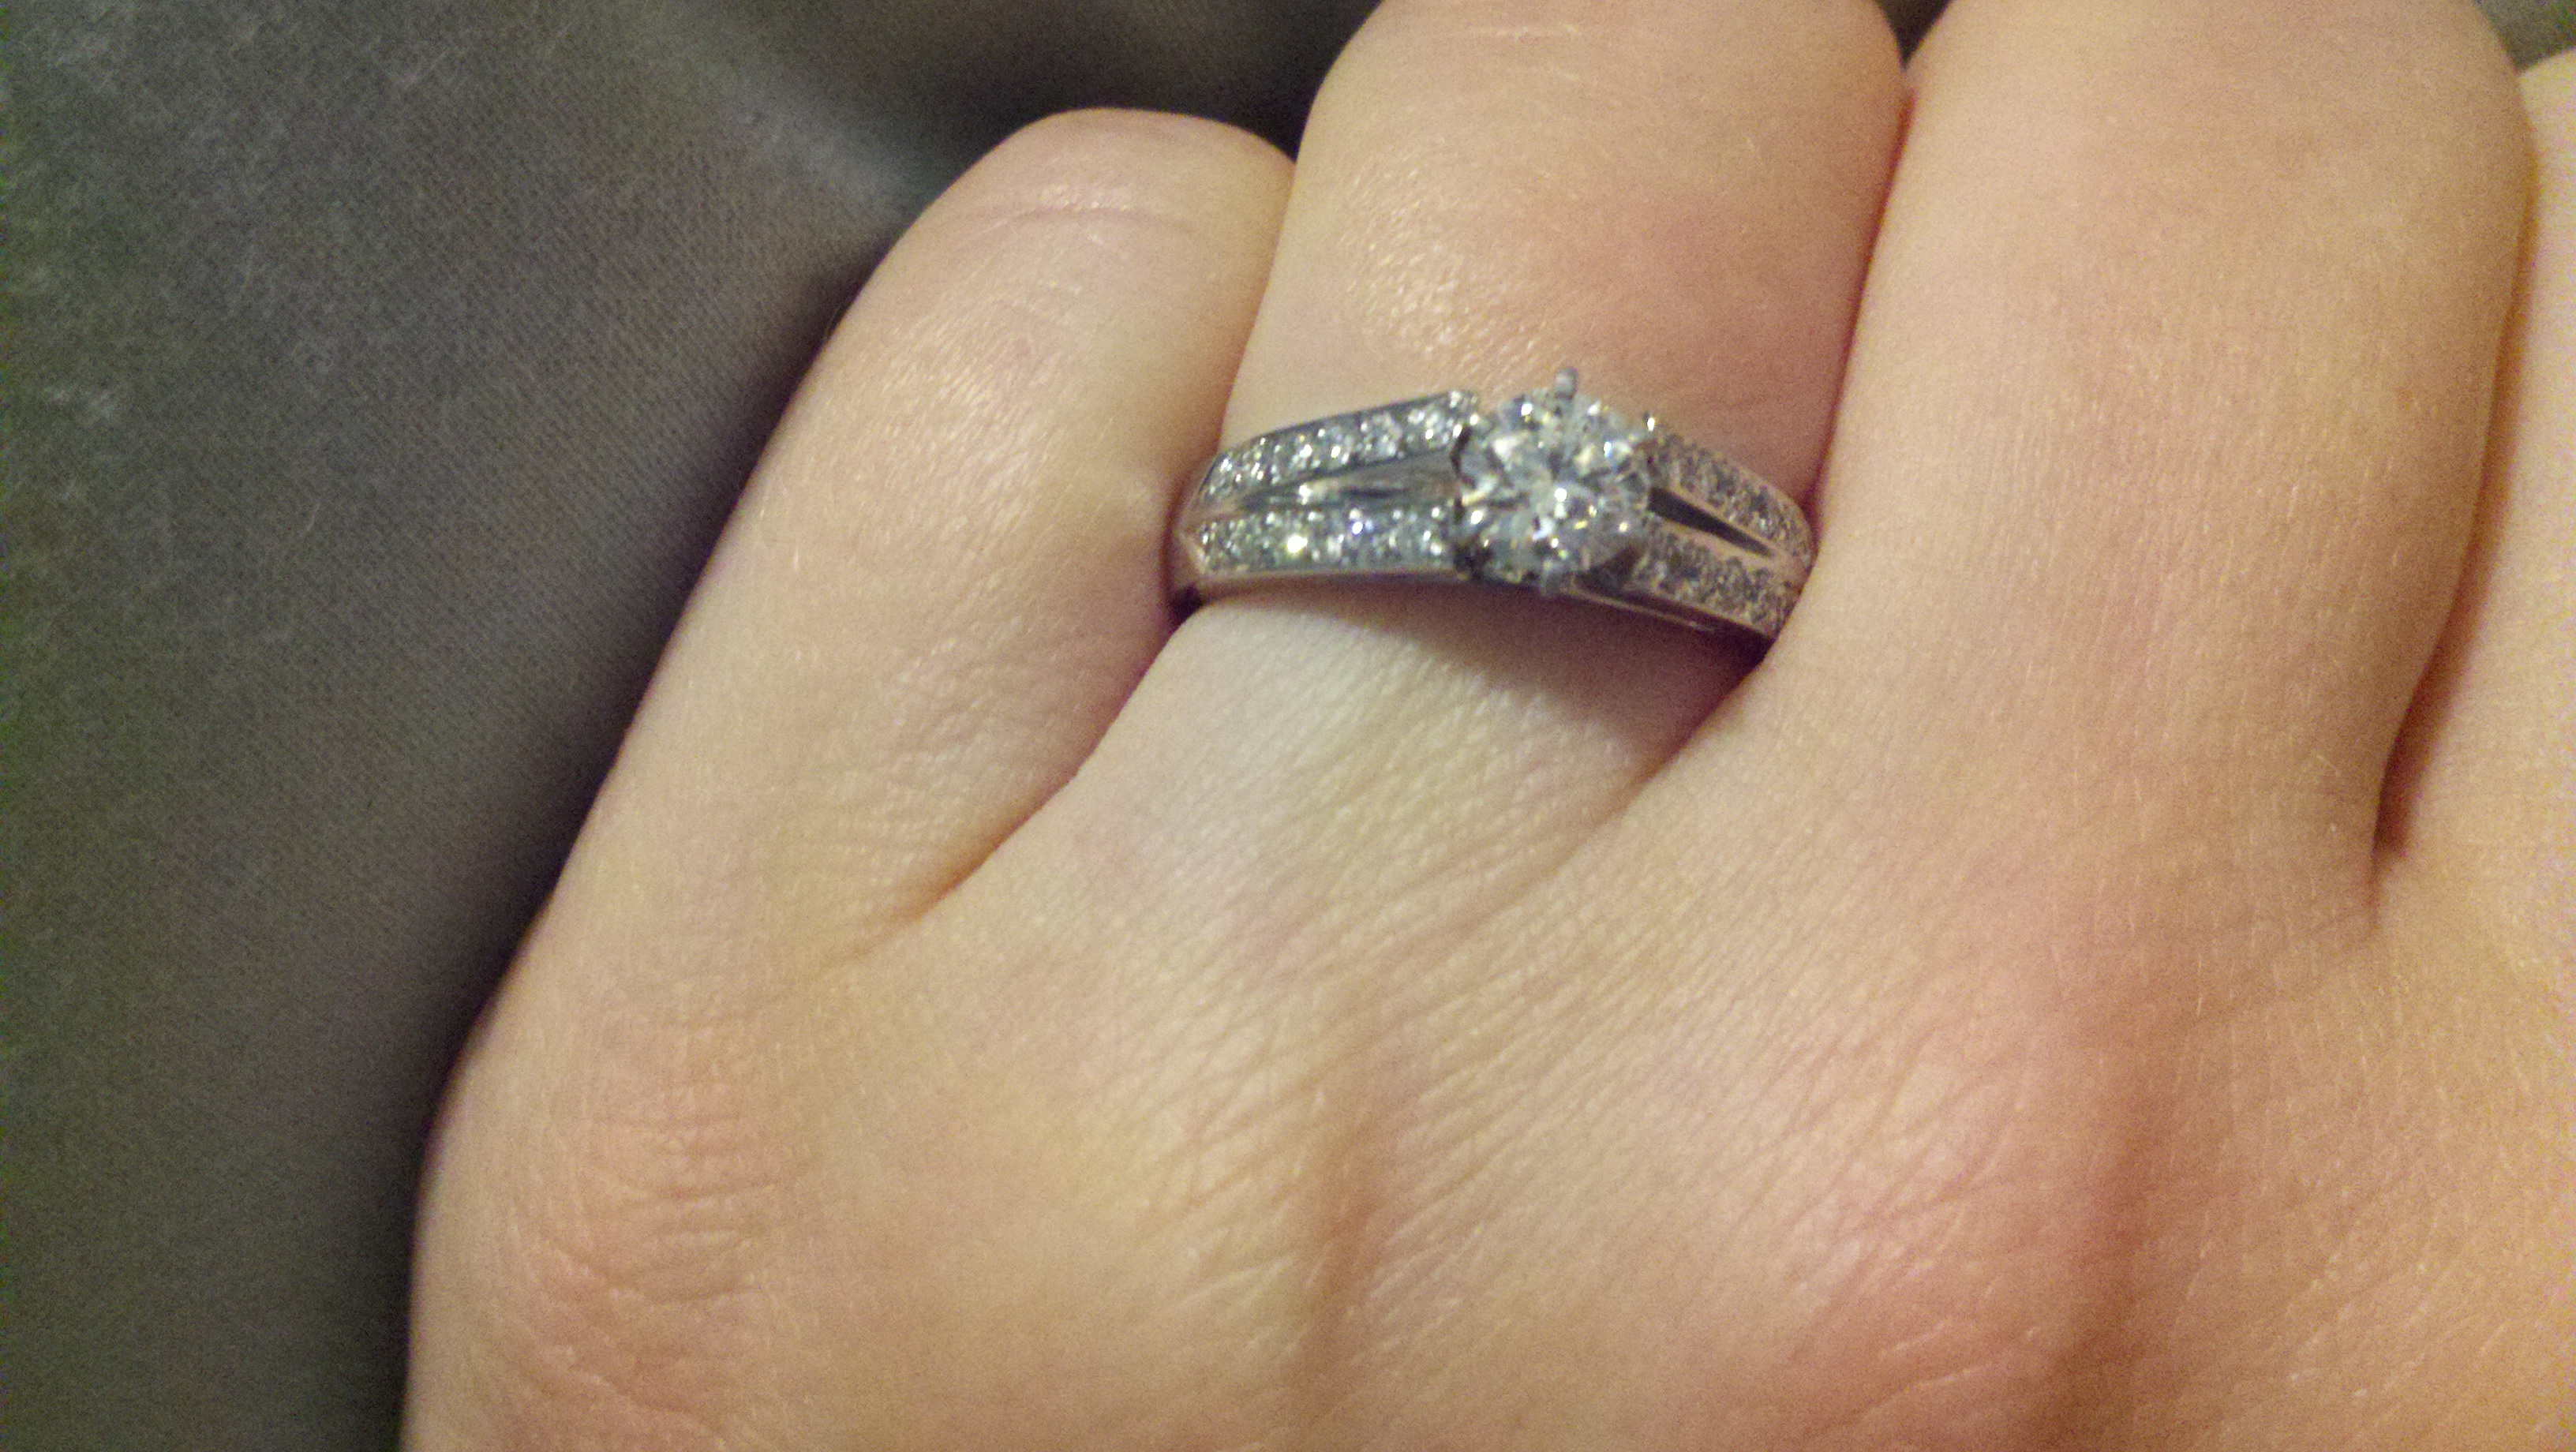 Status Change. I'm Engaged!